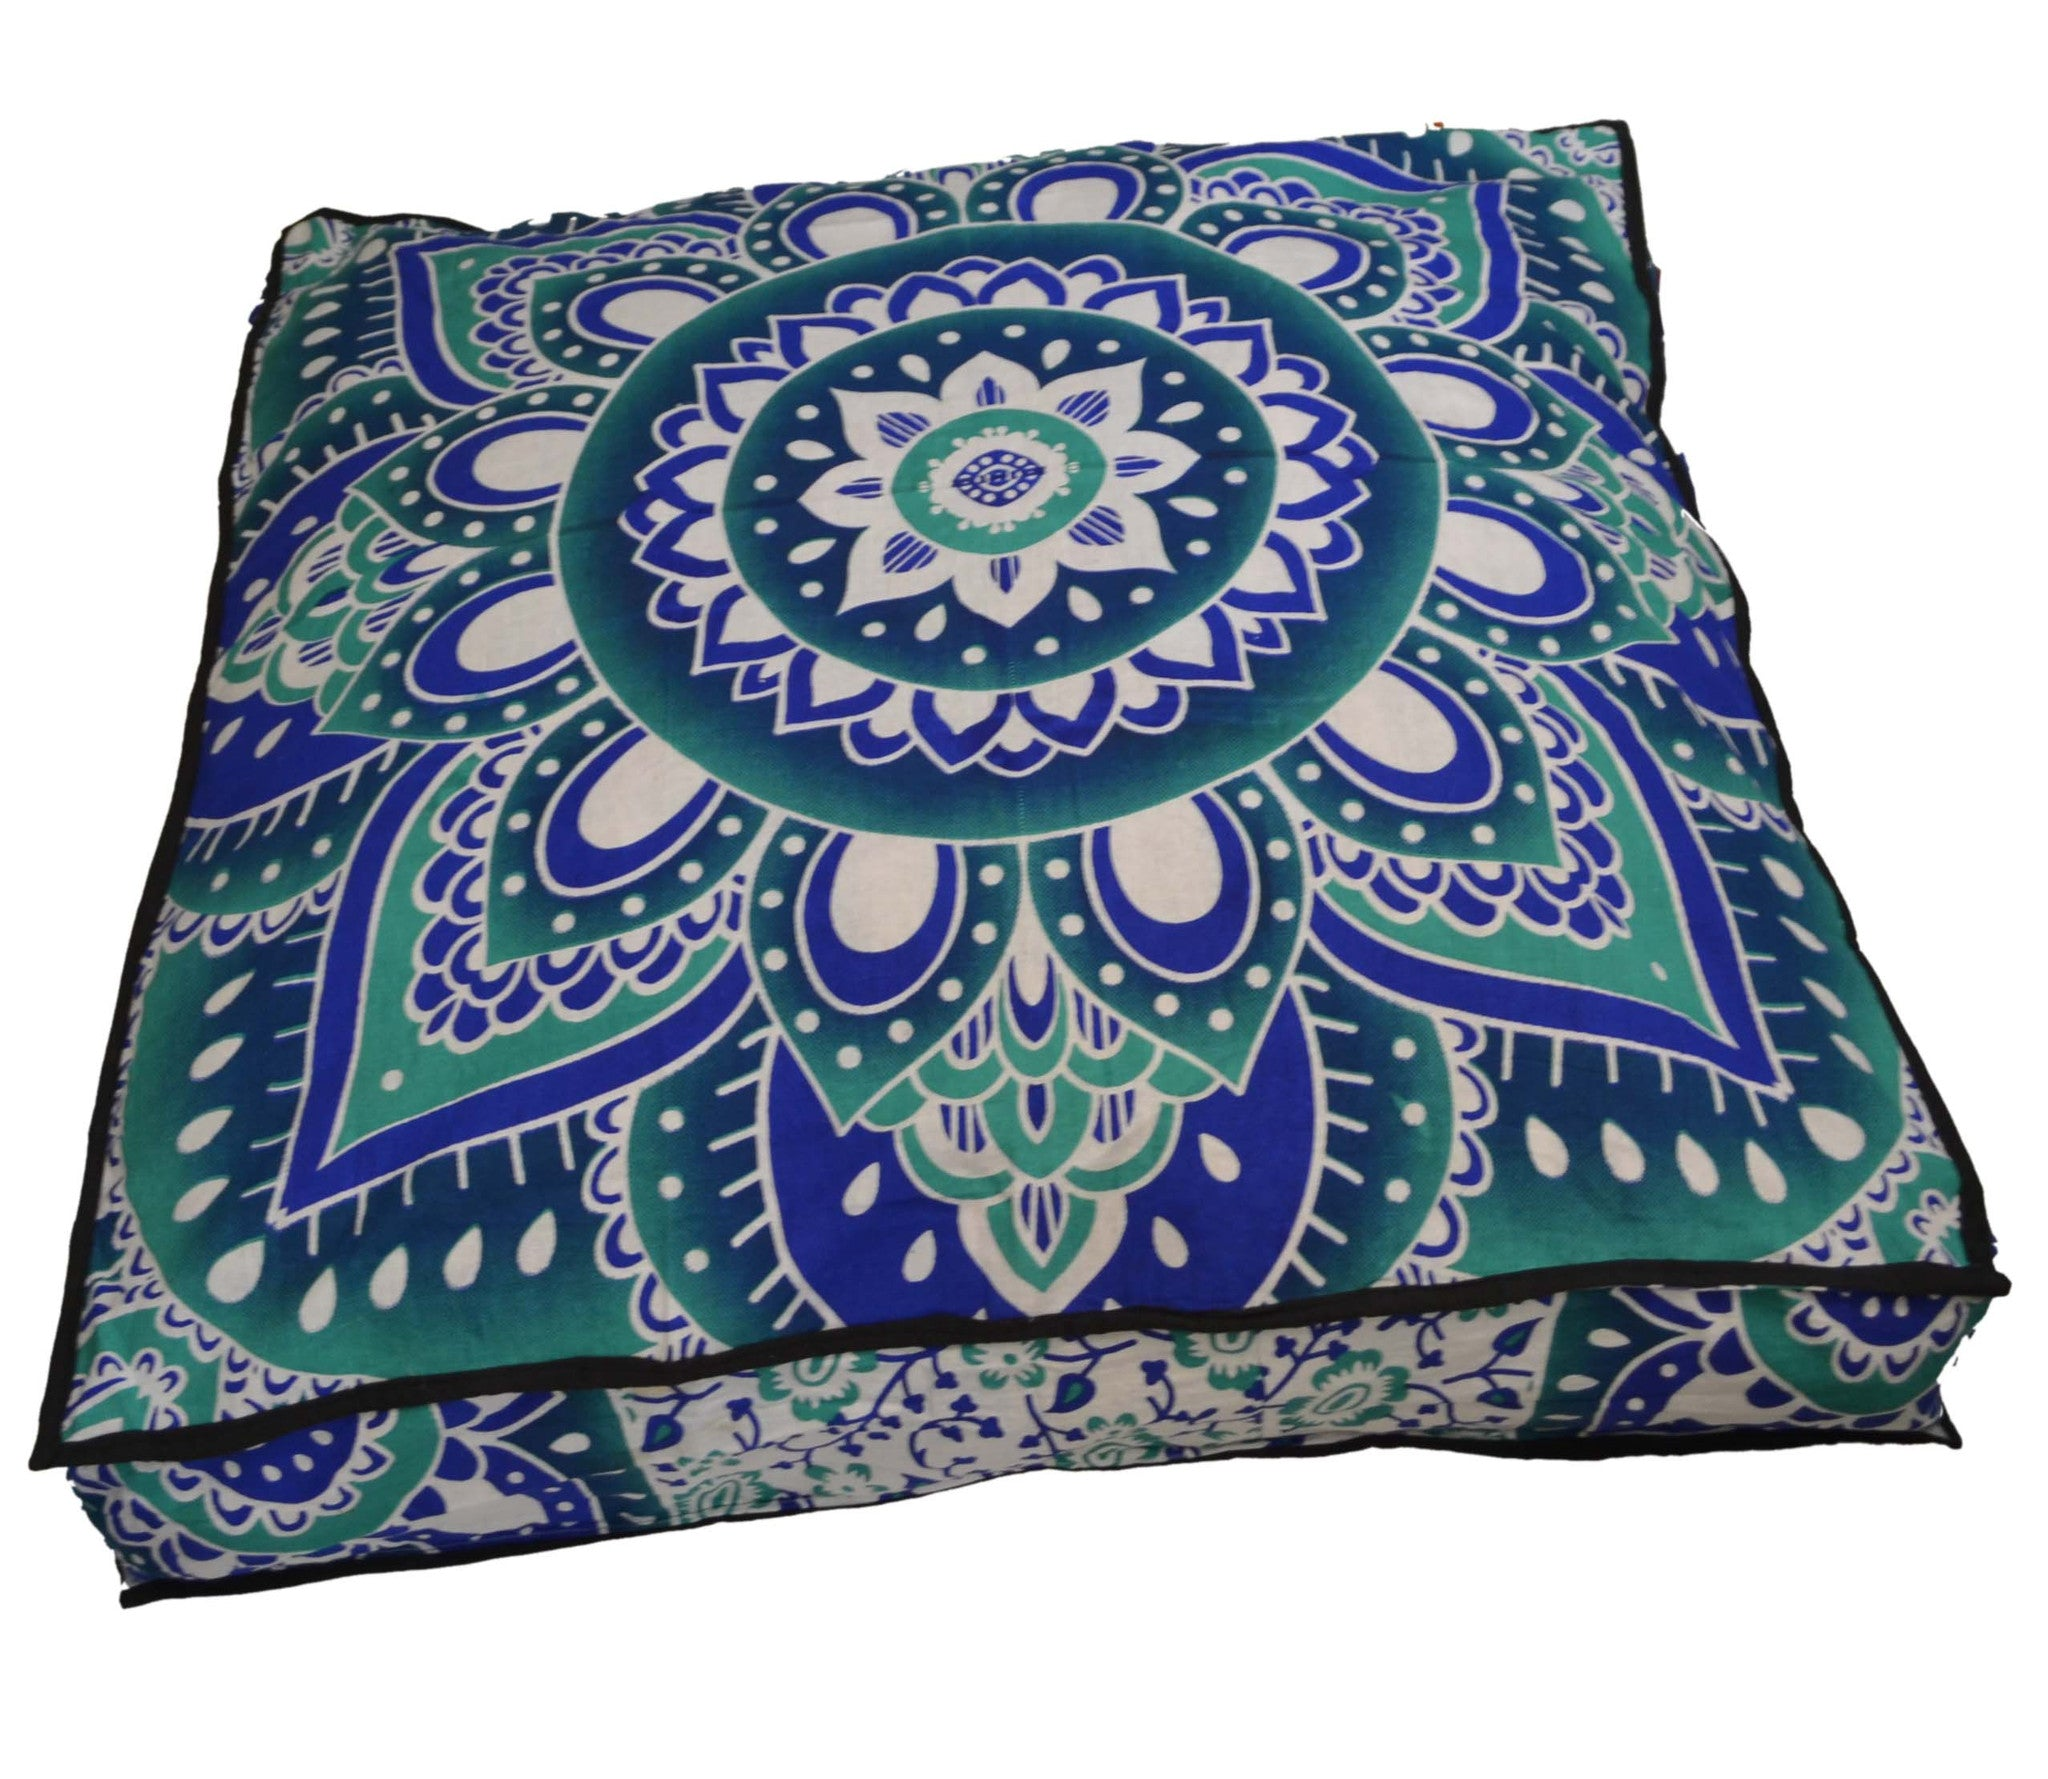 alexia fabric chair yoga pillow for at sewing meditation cushion blanket pillows seat yogaoutletcom gallery patterns